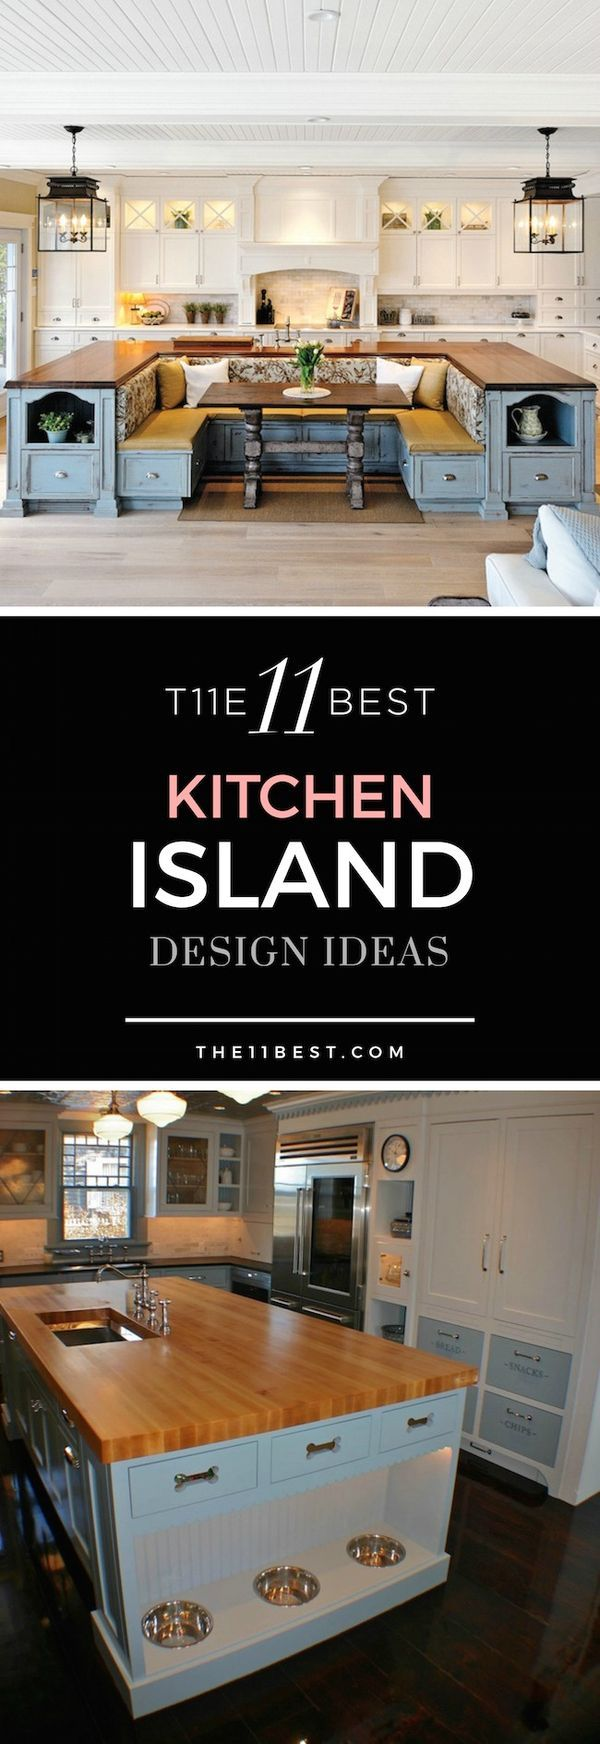 The 11 best kitchen island design ideas for your home for Cheap kitchen island ideas